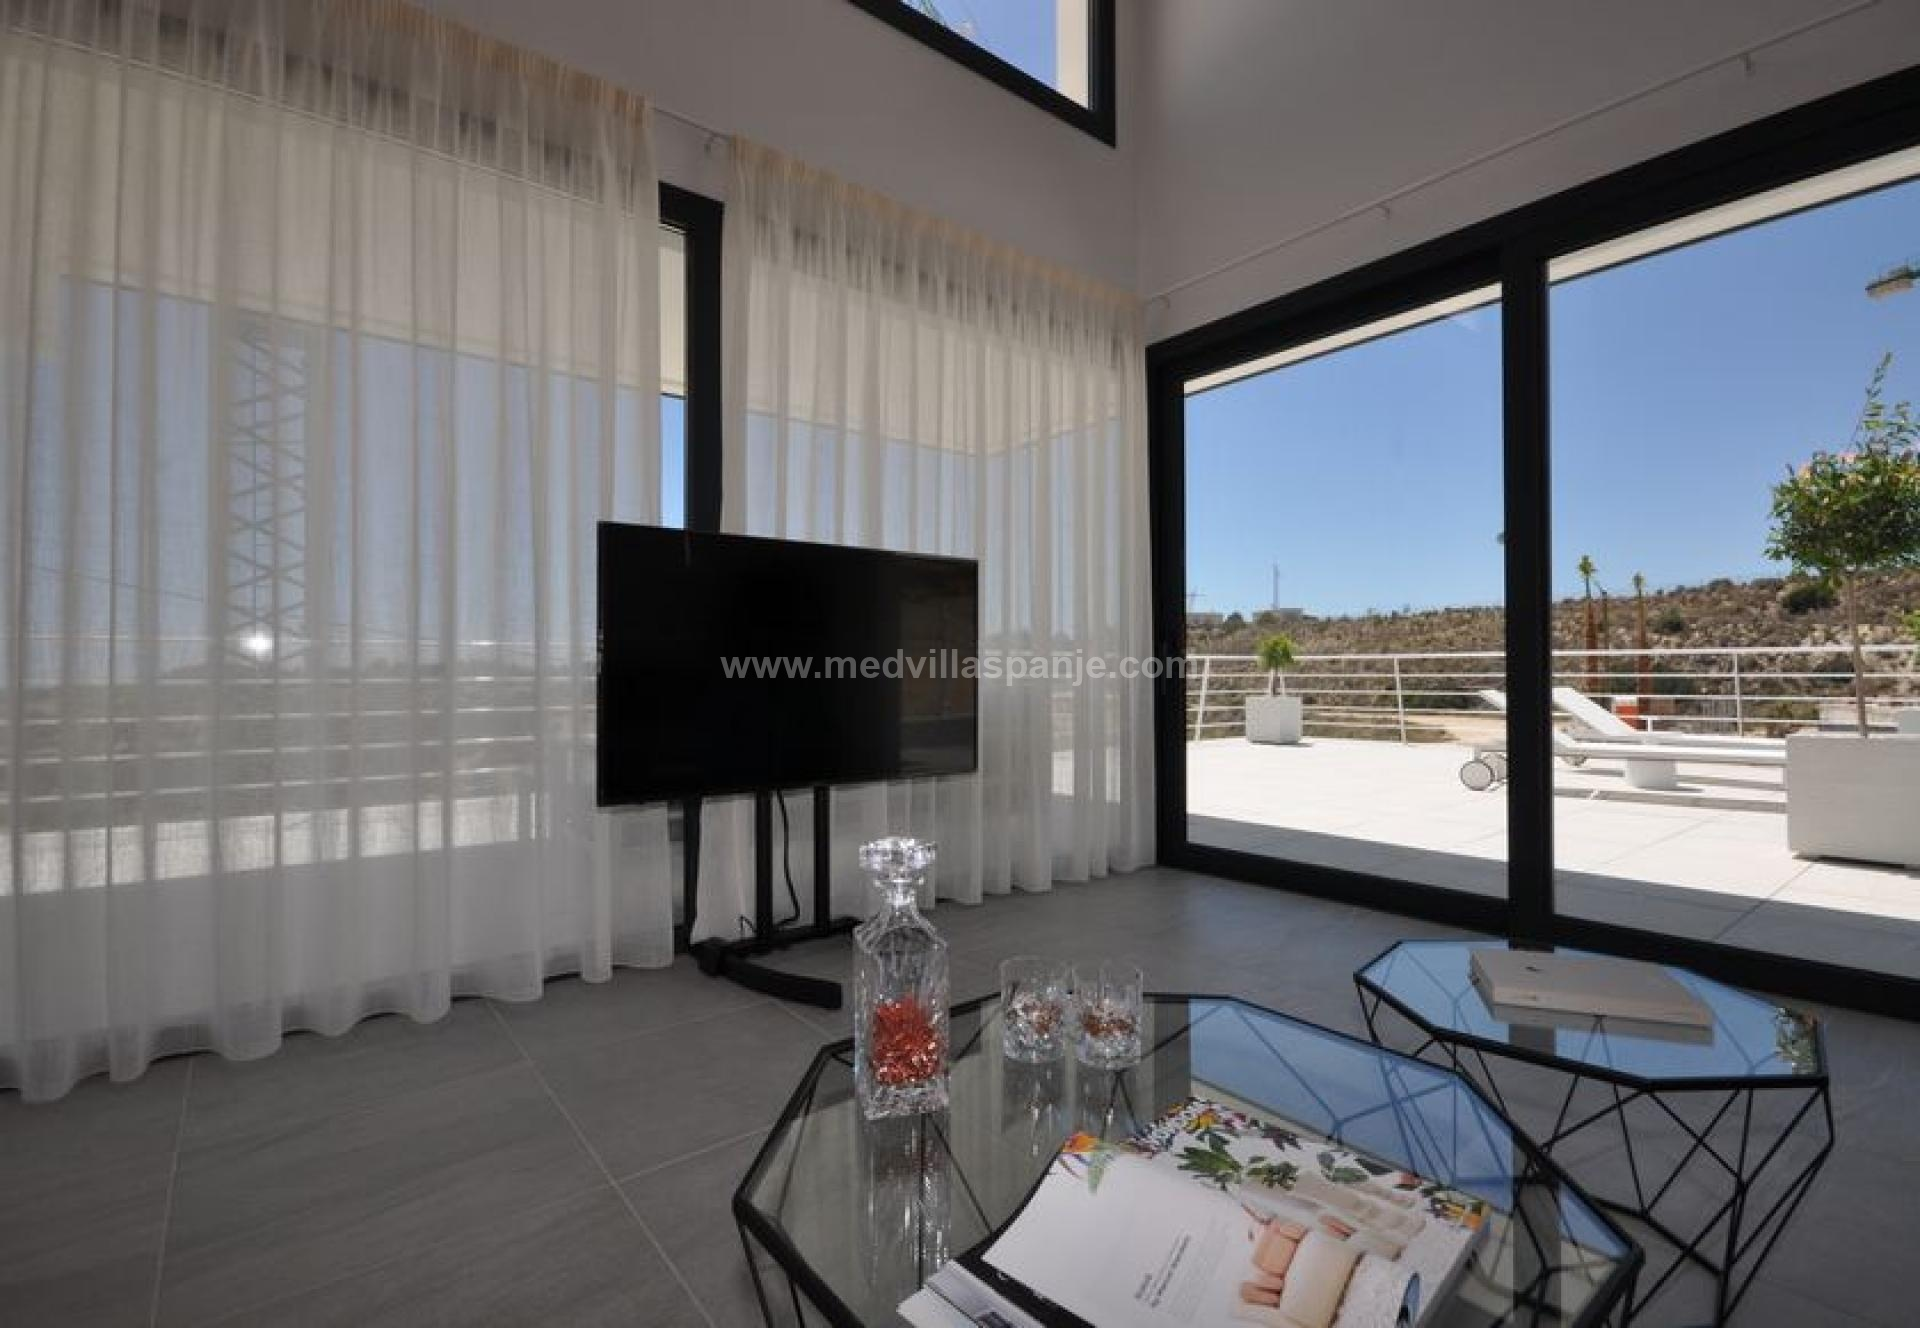 Luxurious villa with private pool and sea views in San Miguel de Salinas in Medvilla Spanje